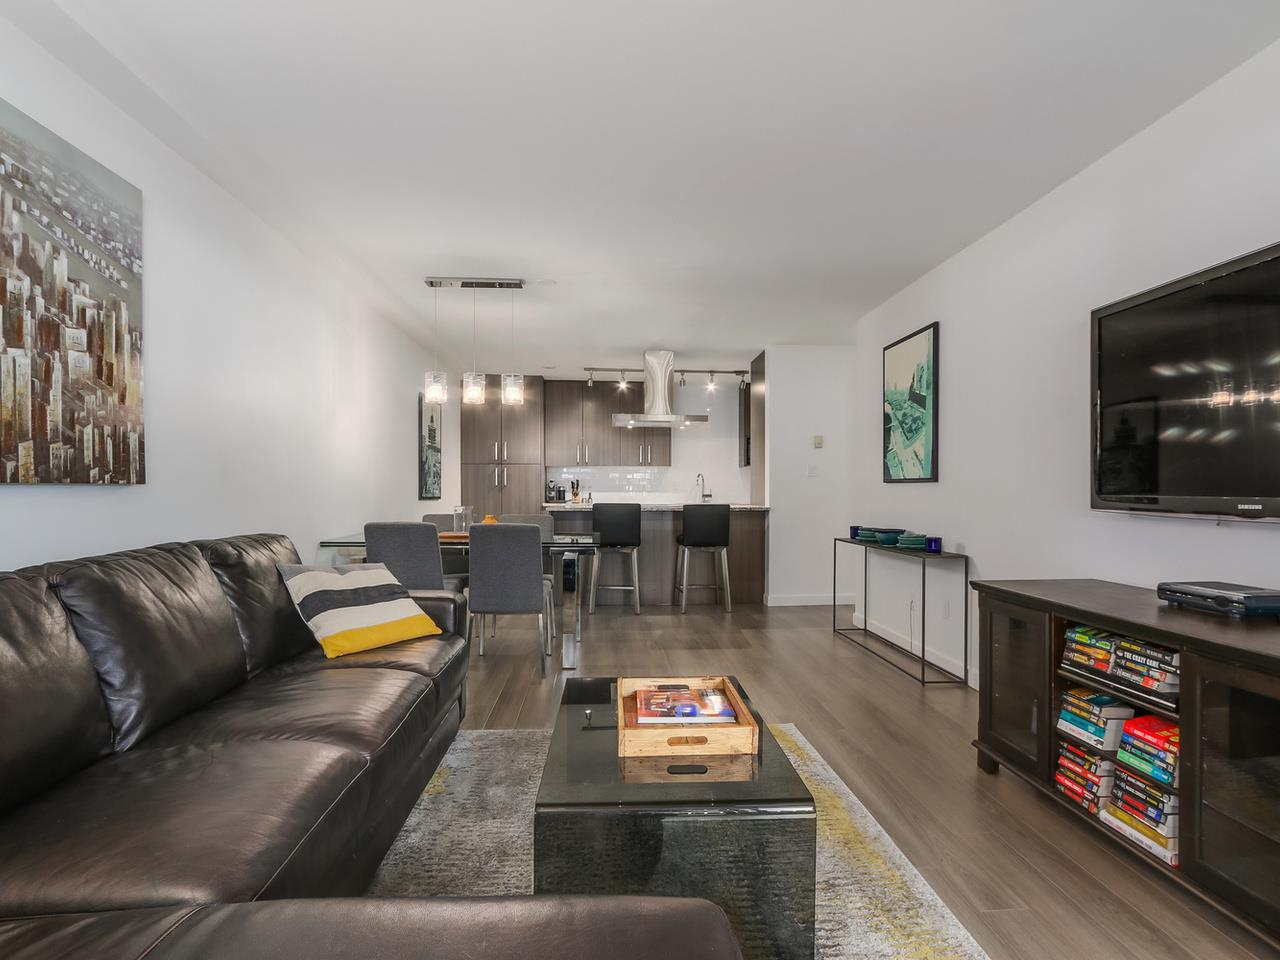 Photo 9: 102 2424 CYPRESS STREET in Vancouver: Kitsilano Condo for sale (Vancouver West)  : MLS(r) # R2059617